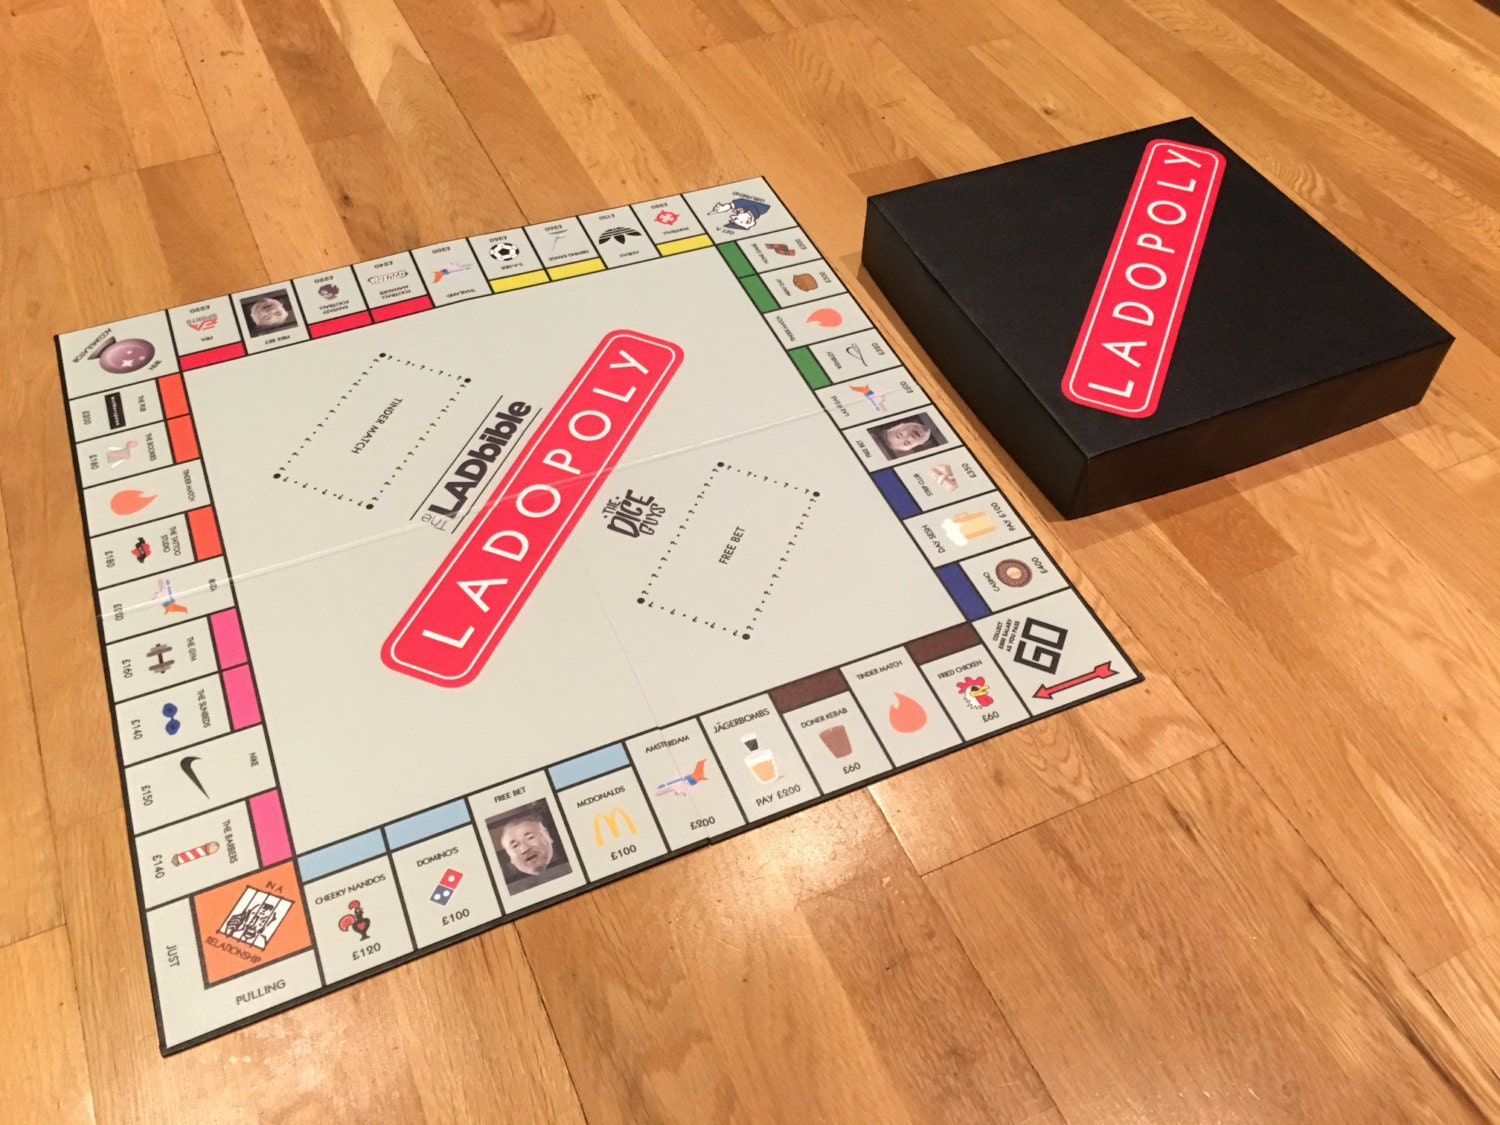 LADOPOLY custom board game (as seen on theLADbible)